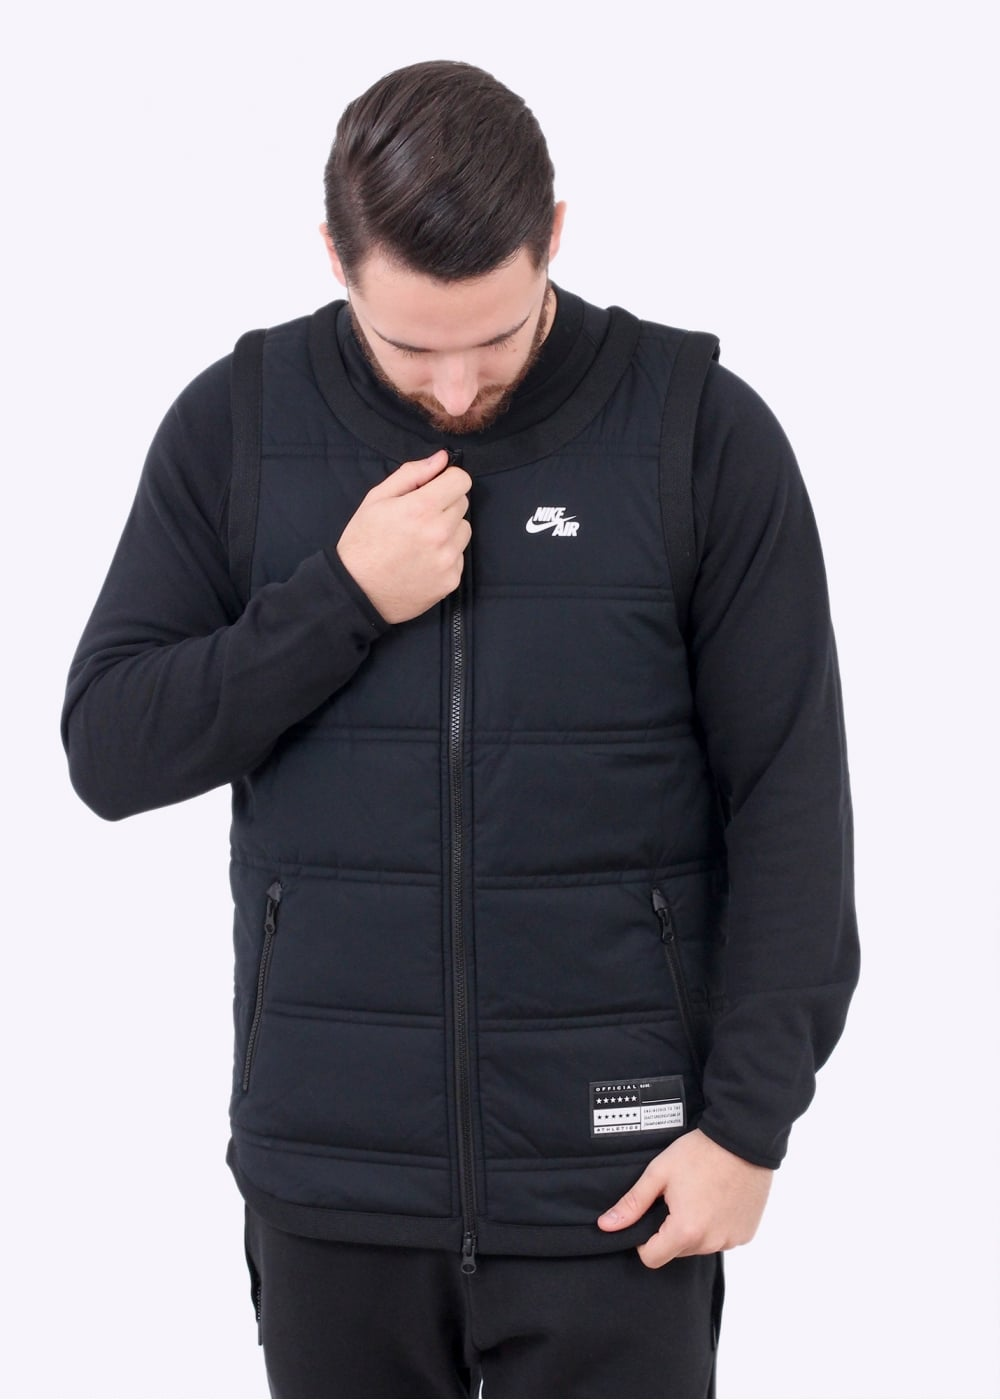 9ac19a9d042e Nike Apparel Air Top Vest - Black - Gilets from Triads UK